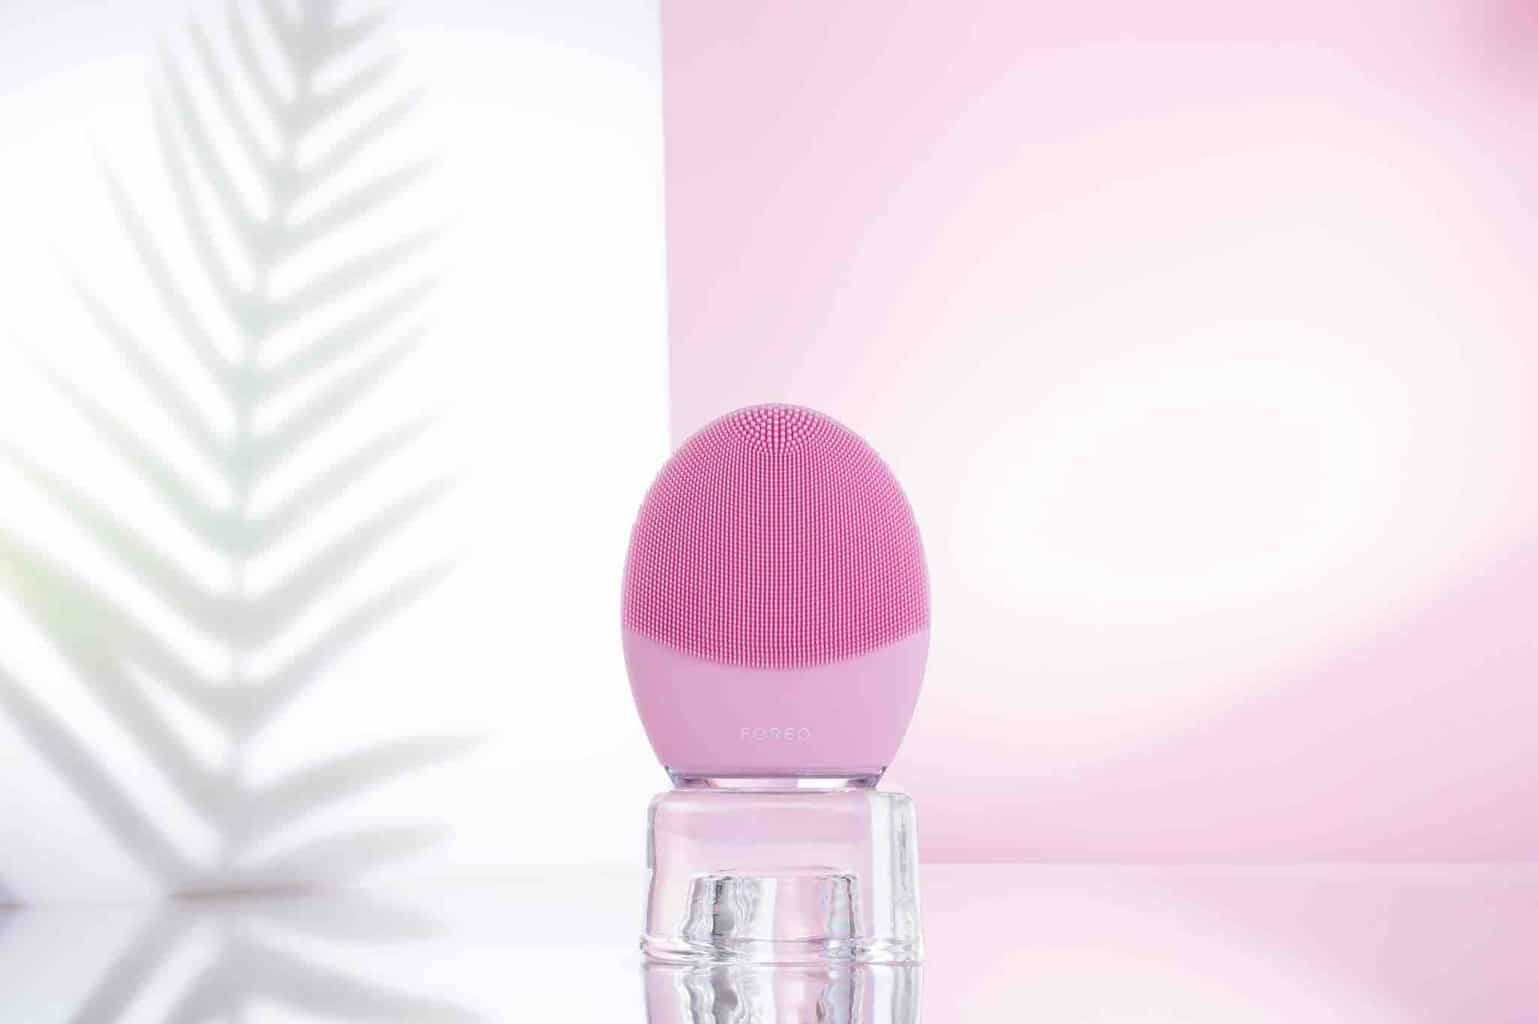 Reviewing The FOREO LUNA 3 Facial Cleansing Device